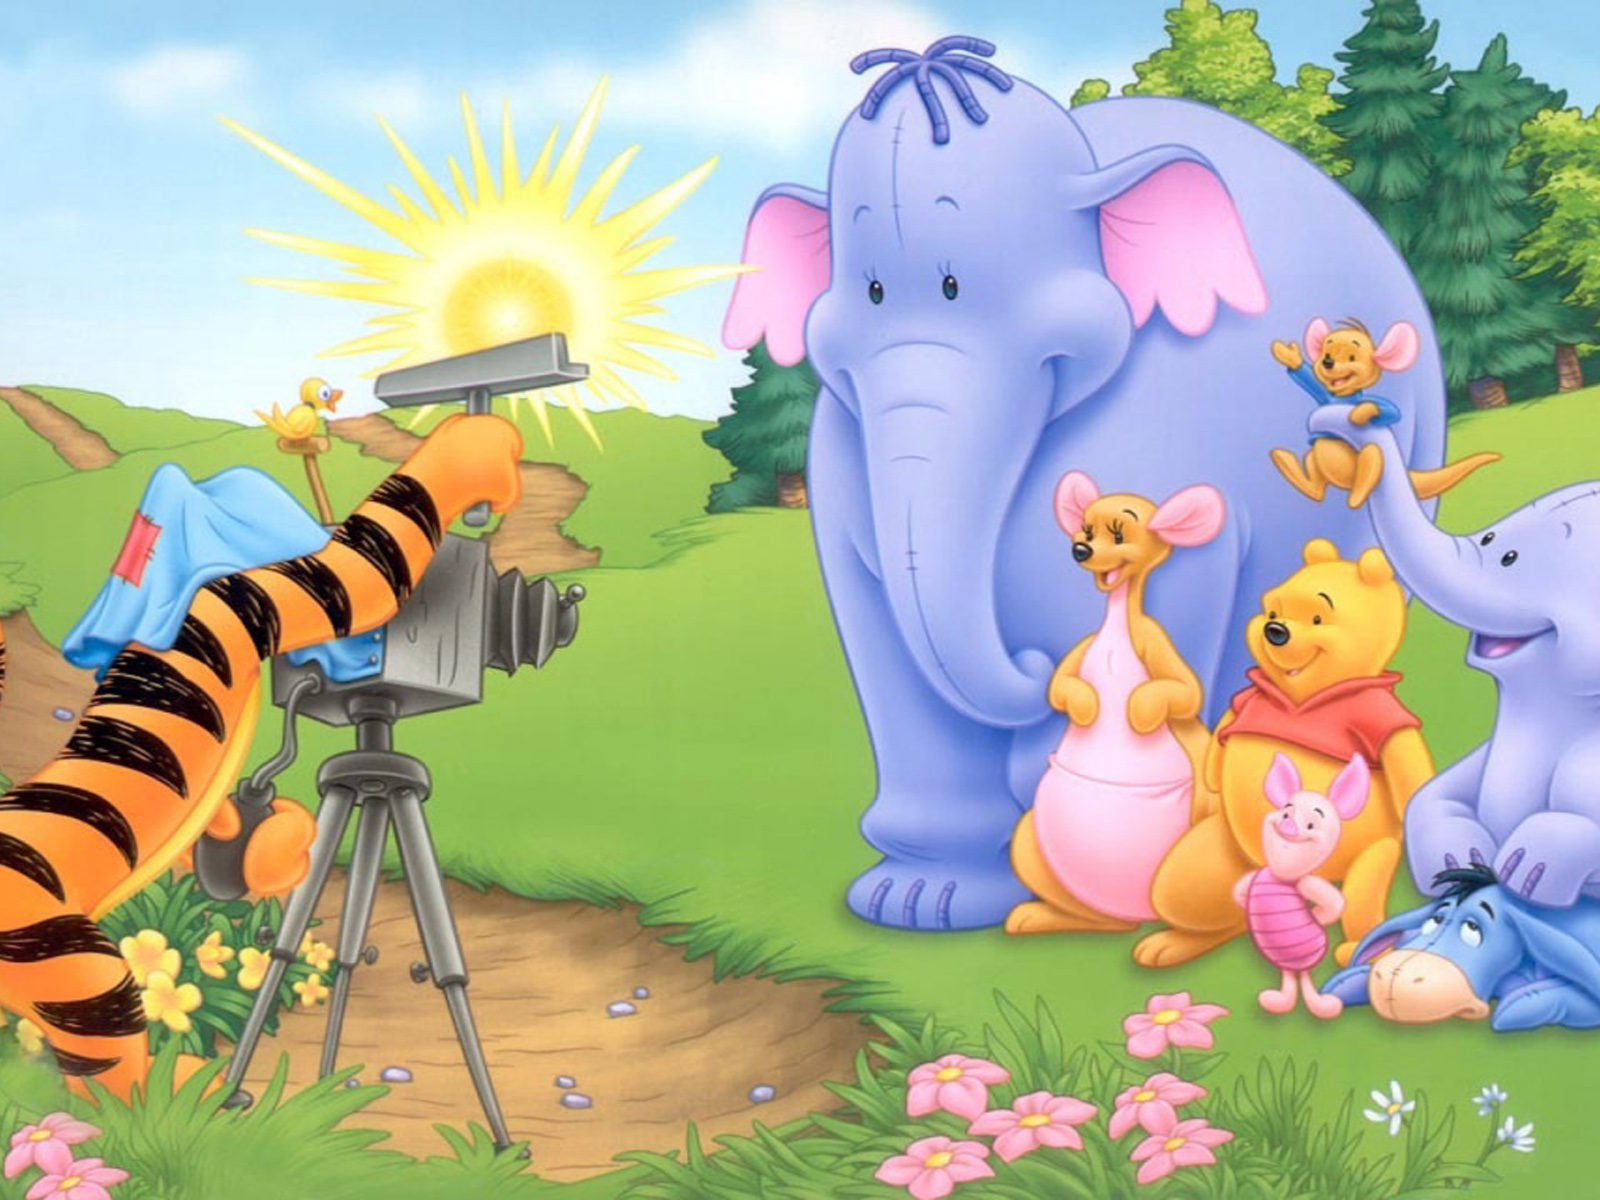 Kangaroo Wallpaper Hd Tigger Shooting Heffalumps Kanga Roo And Piglet In Eeyore